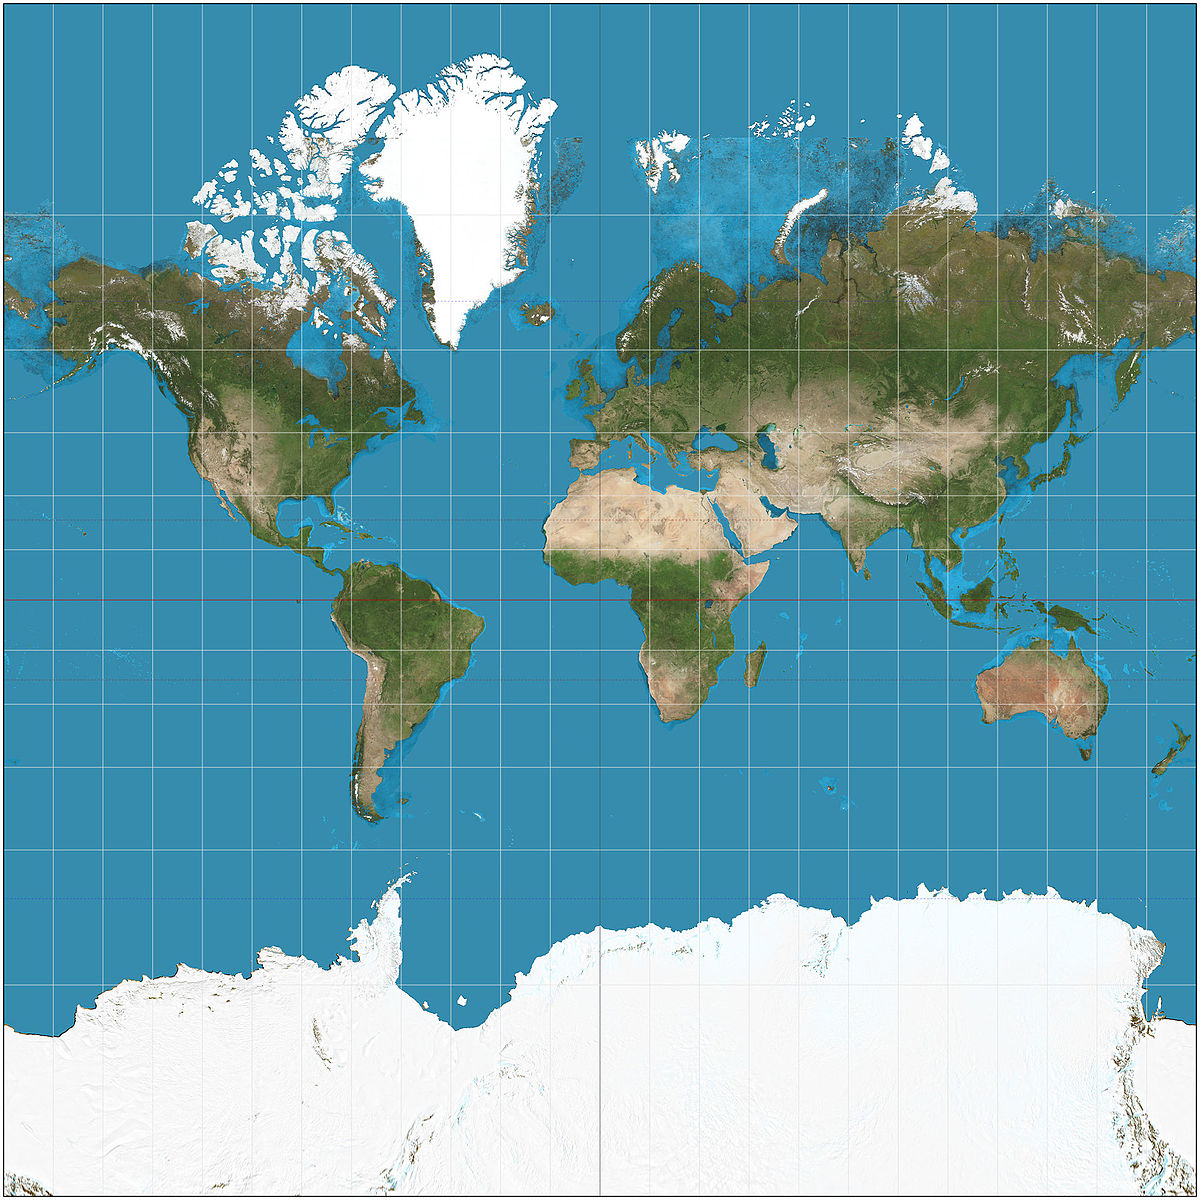 Map of the world - mercator projection